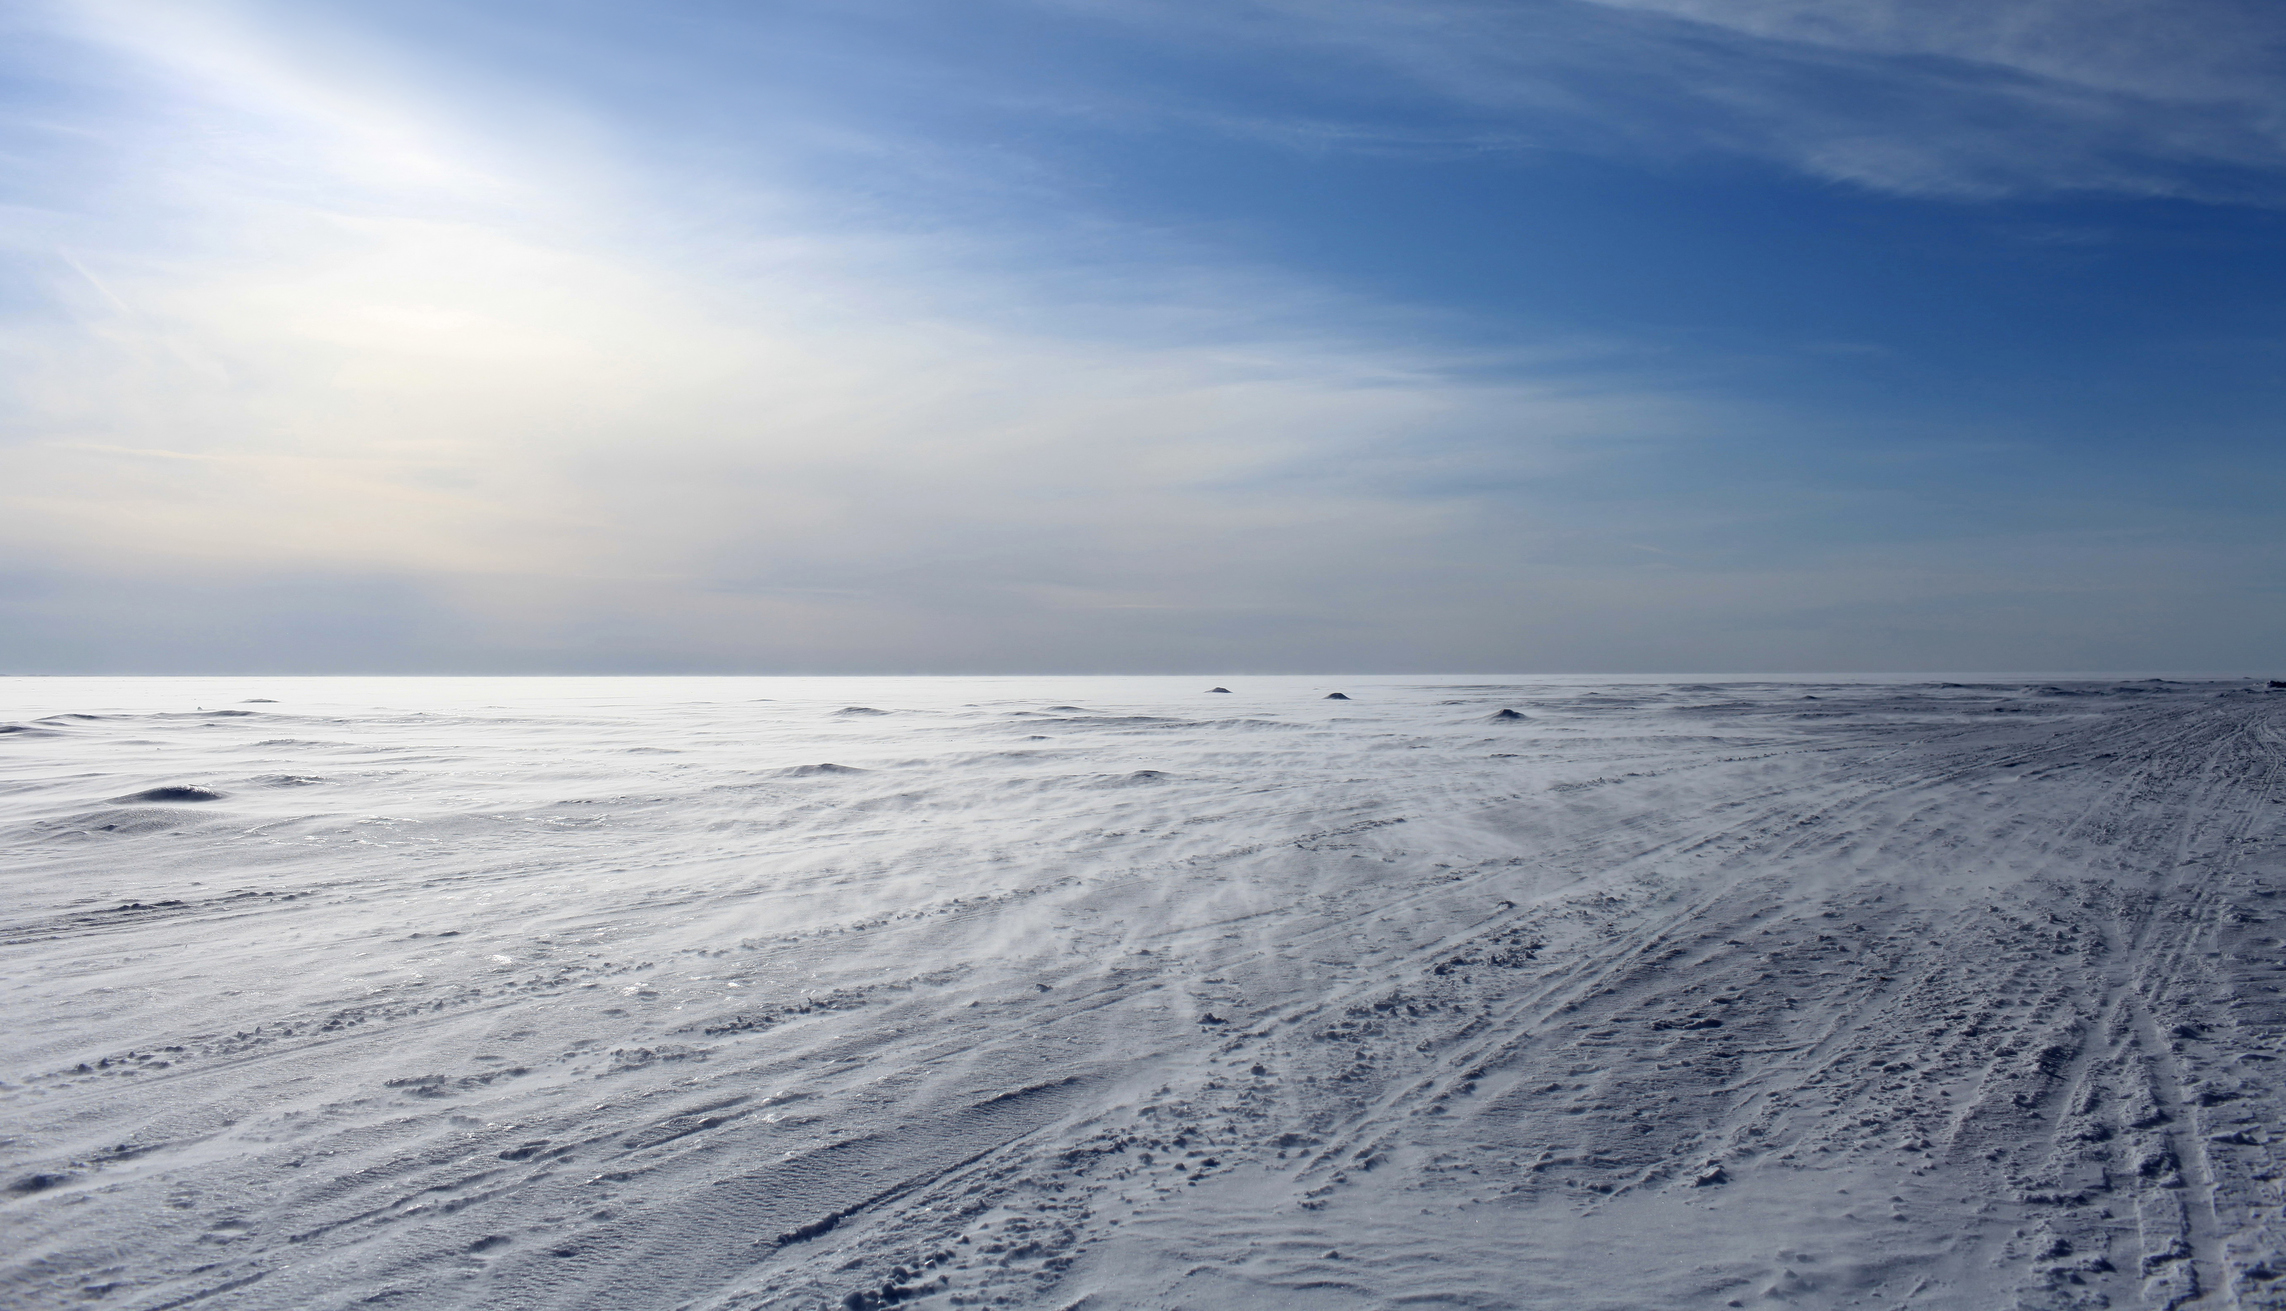 Stock image of a wind frozen sea looking like a white snowy desert. (Photo: ©iStockphoto.com/iv-serg)